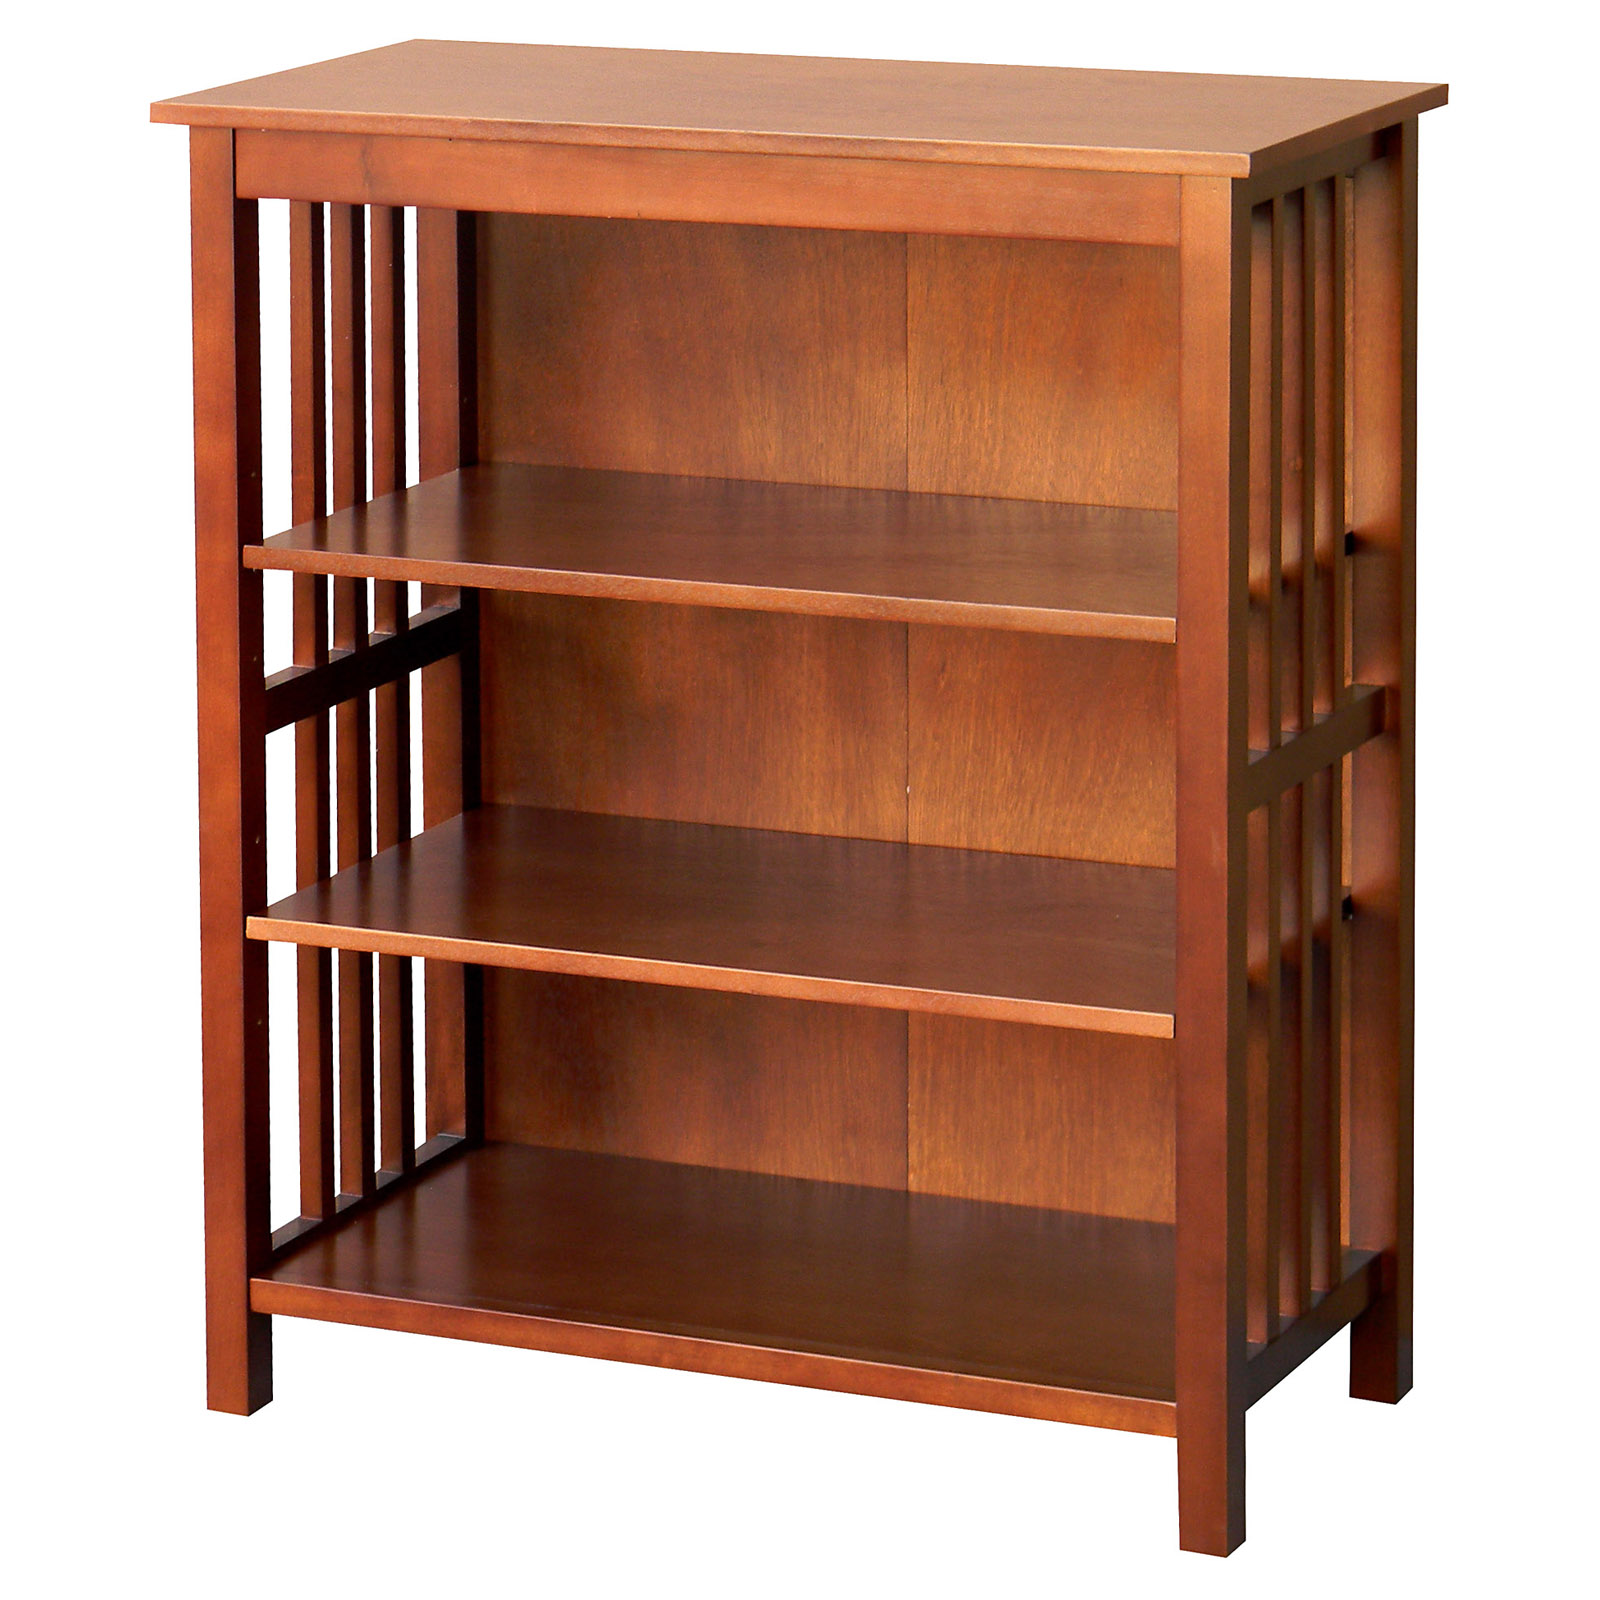 DonnieAnn Hollydale 36 in. Bookcase - Chestnut  sc 1 st  Hayneedle & Craftsman u0026 Mission Style Bookcases and Bookshelves | Hayneedle